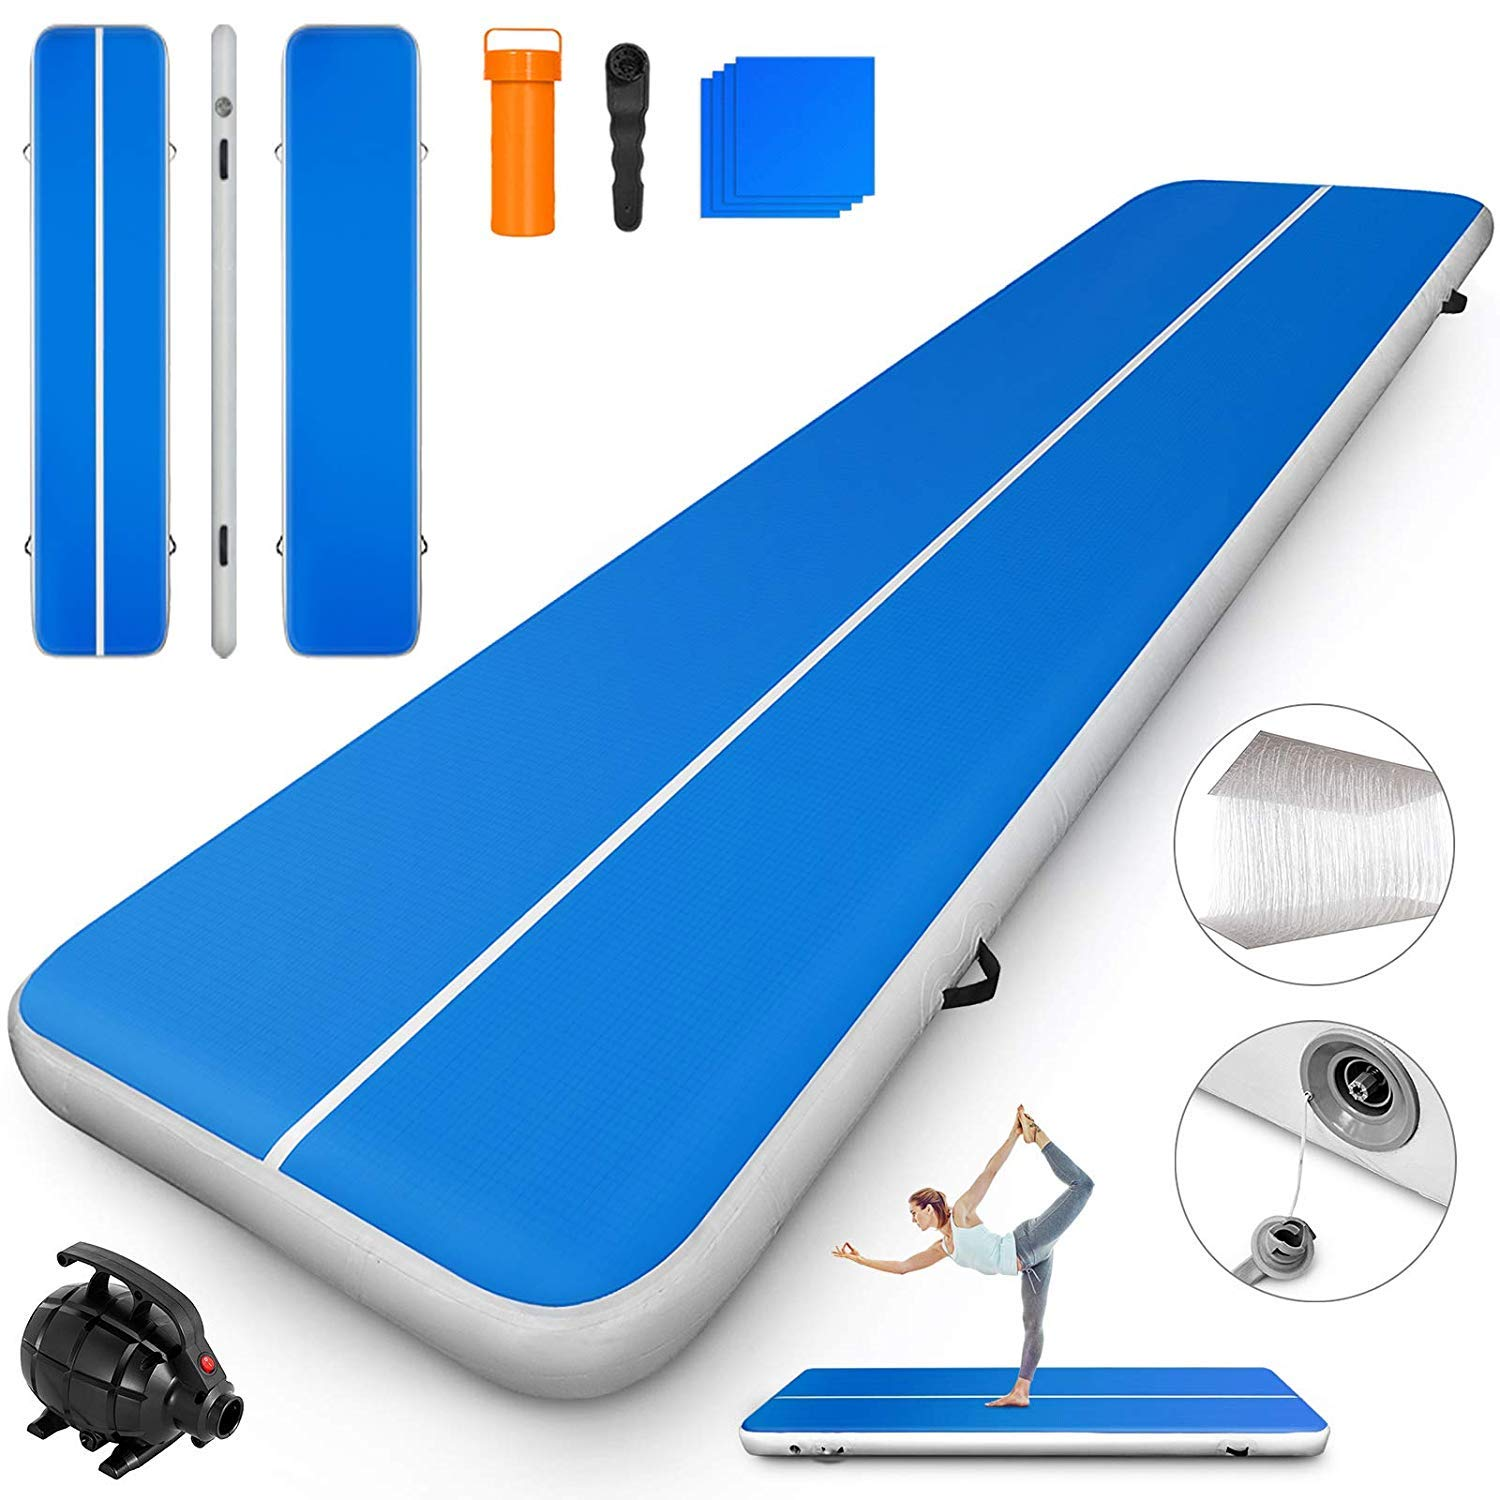 Happybuy 10ft 13ft 16ft 20ft 23ft 26ft 30ft Air Track 8 inches Airtrack 4 inches Inflatable Air Track Tumbling Mat for Gymnastics Martial Arts Cheerleading Tumble Track with Pump Blue 20ft 80x8in